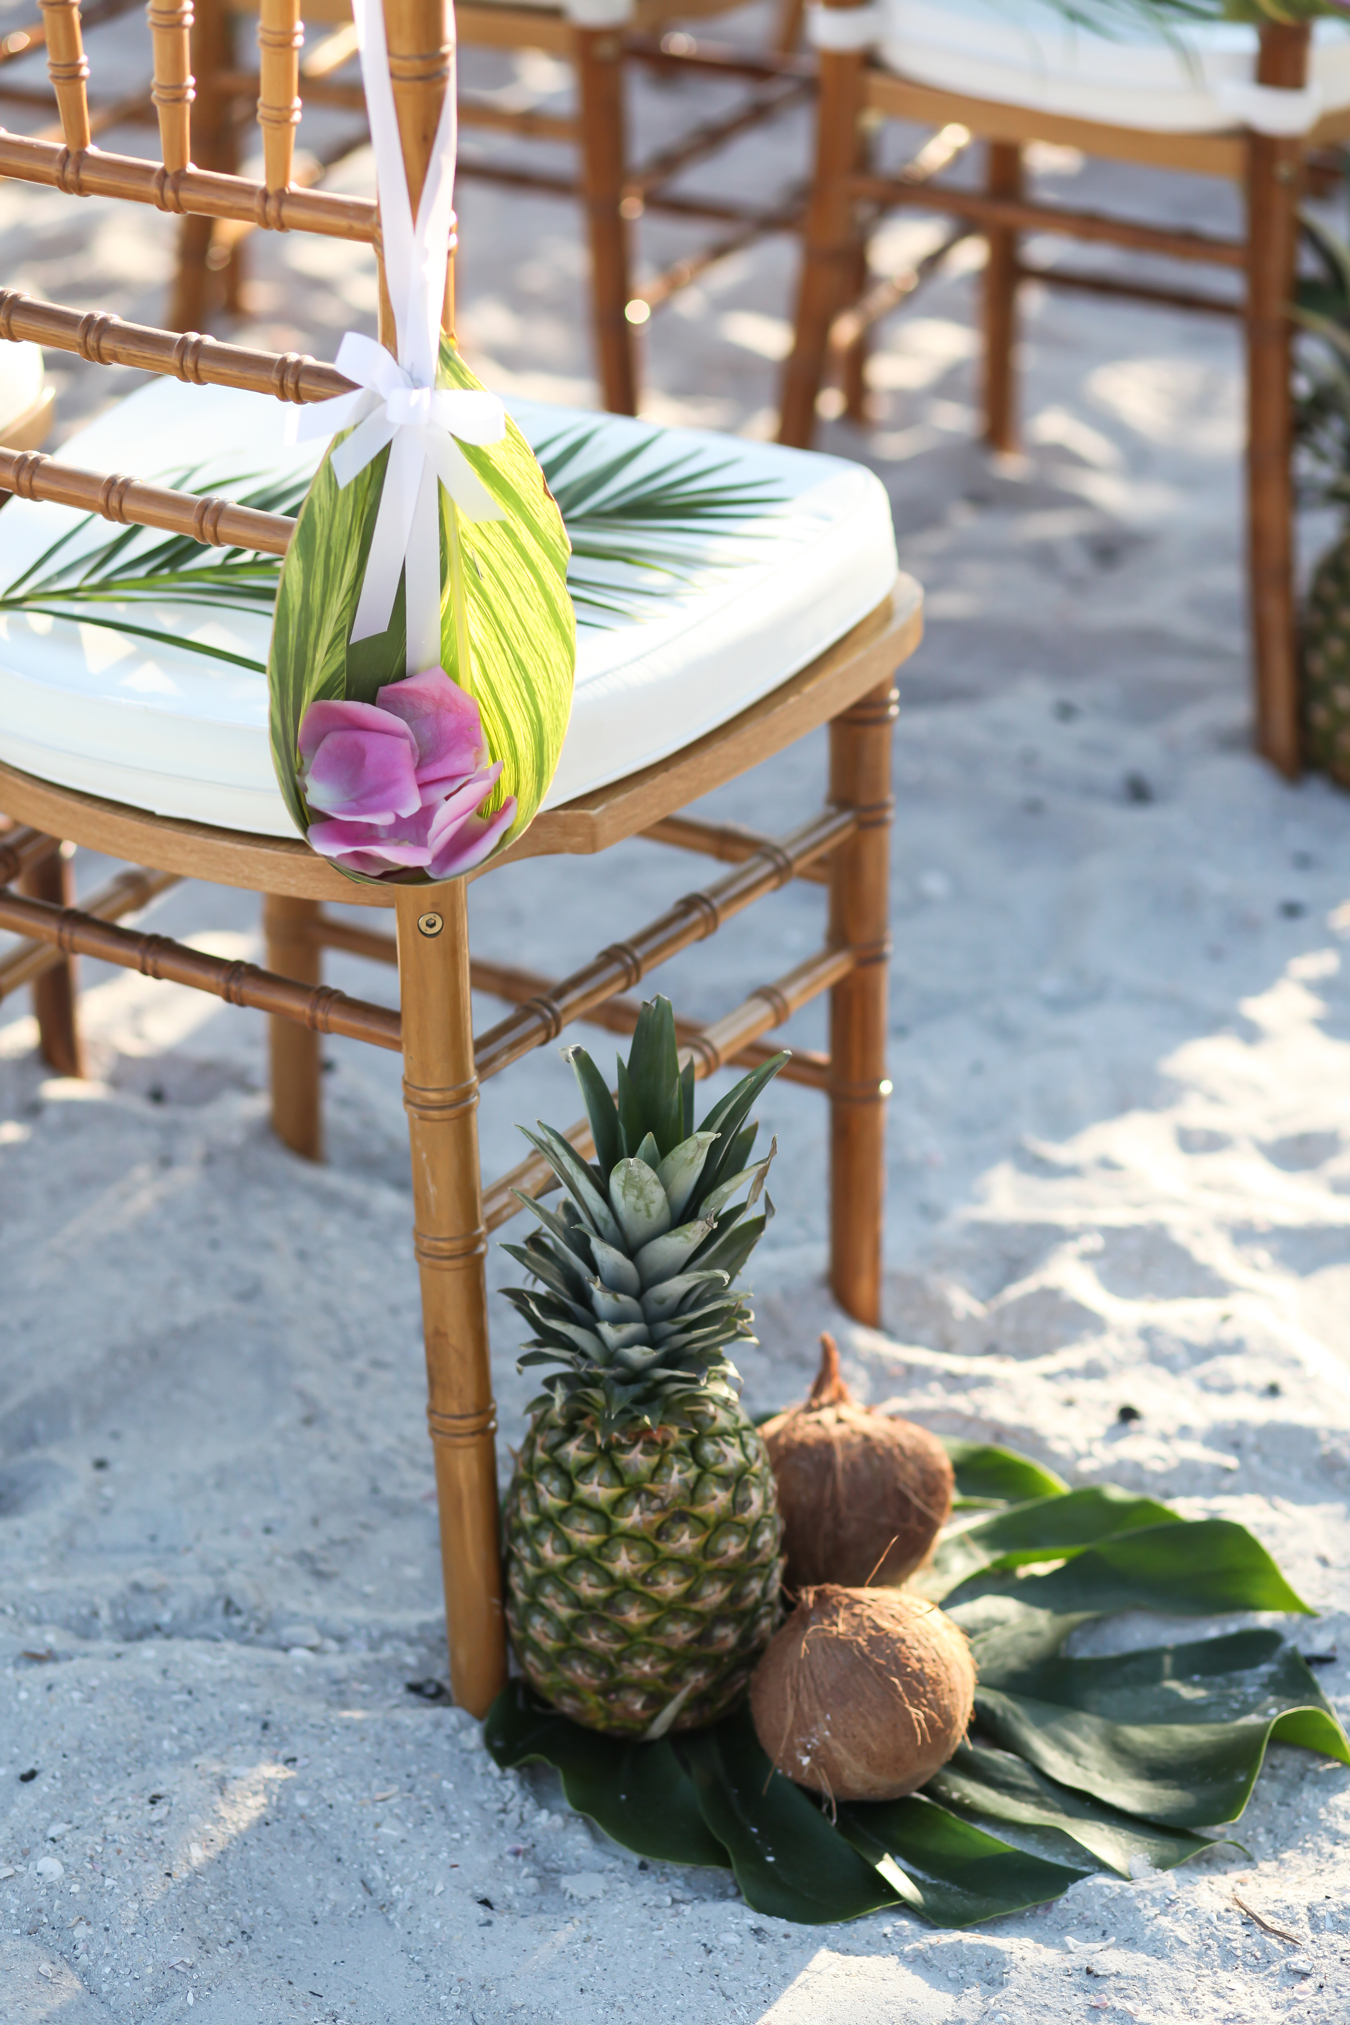 Pineapples, coconuts, and split leaf philodendron leaves aisle decor